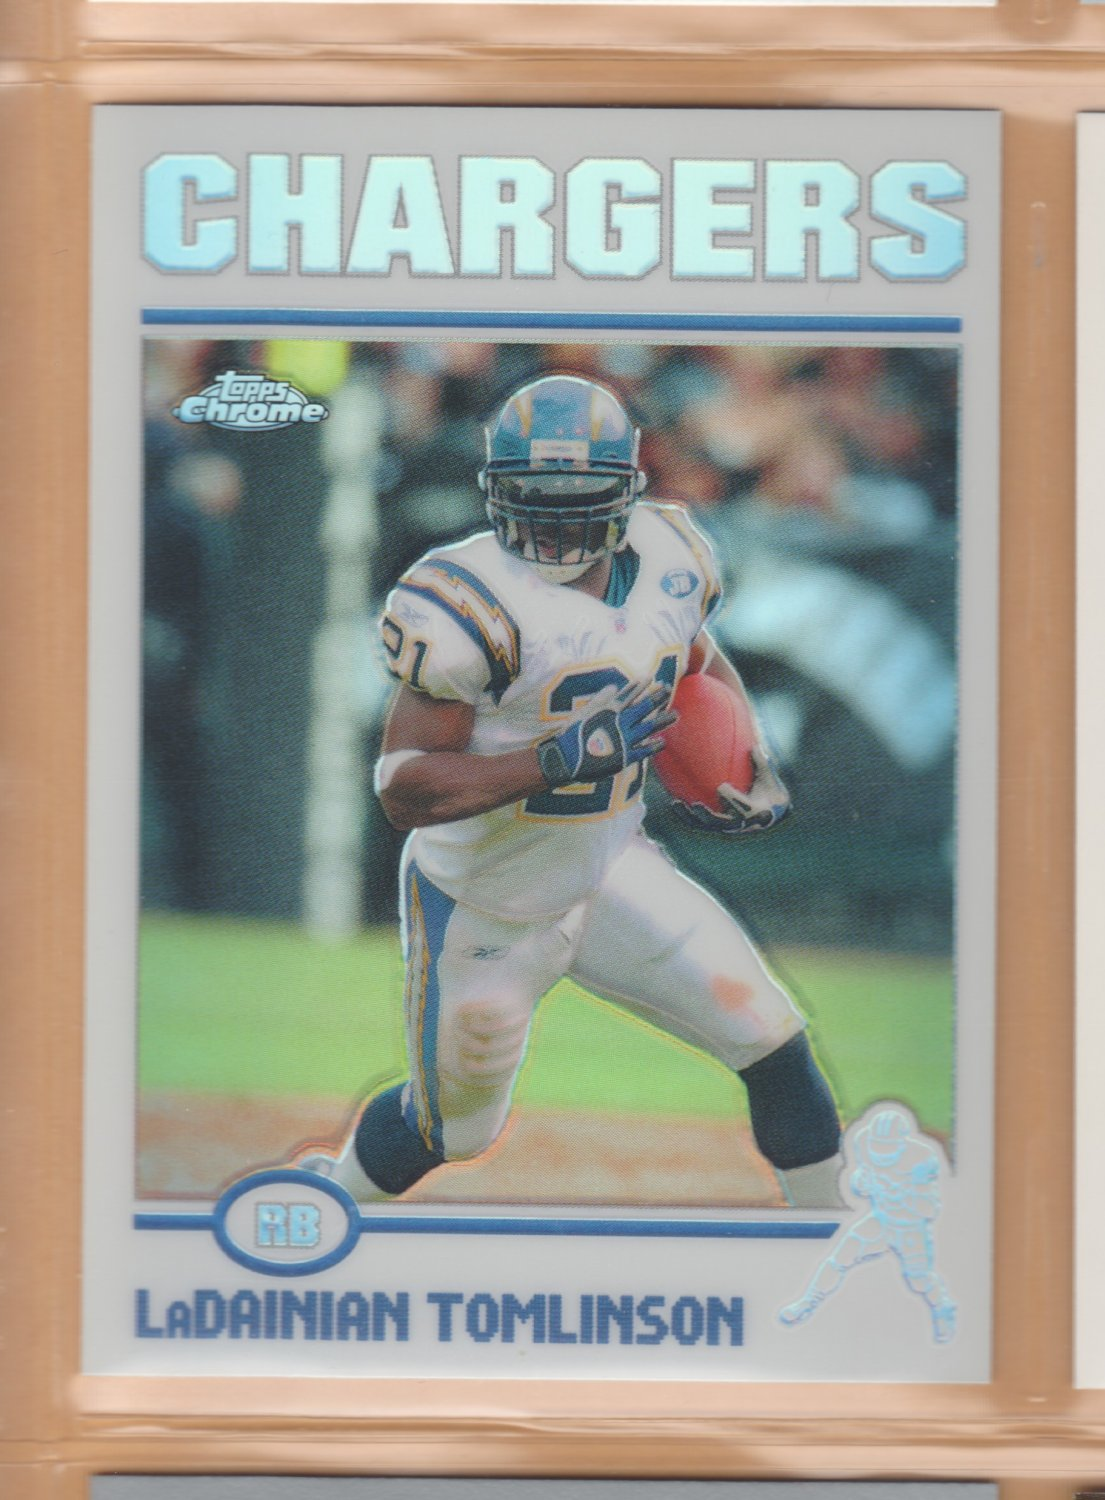 2004 Topps Chrome Refractor LaDainian Tomlinson Chargers